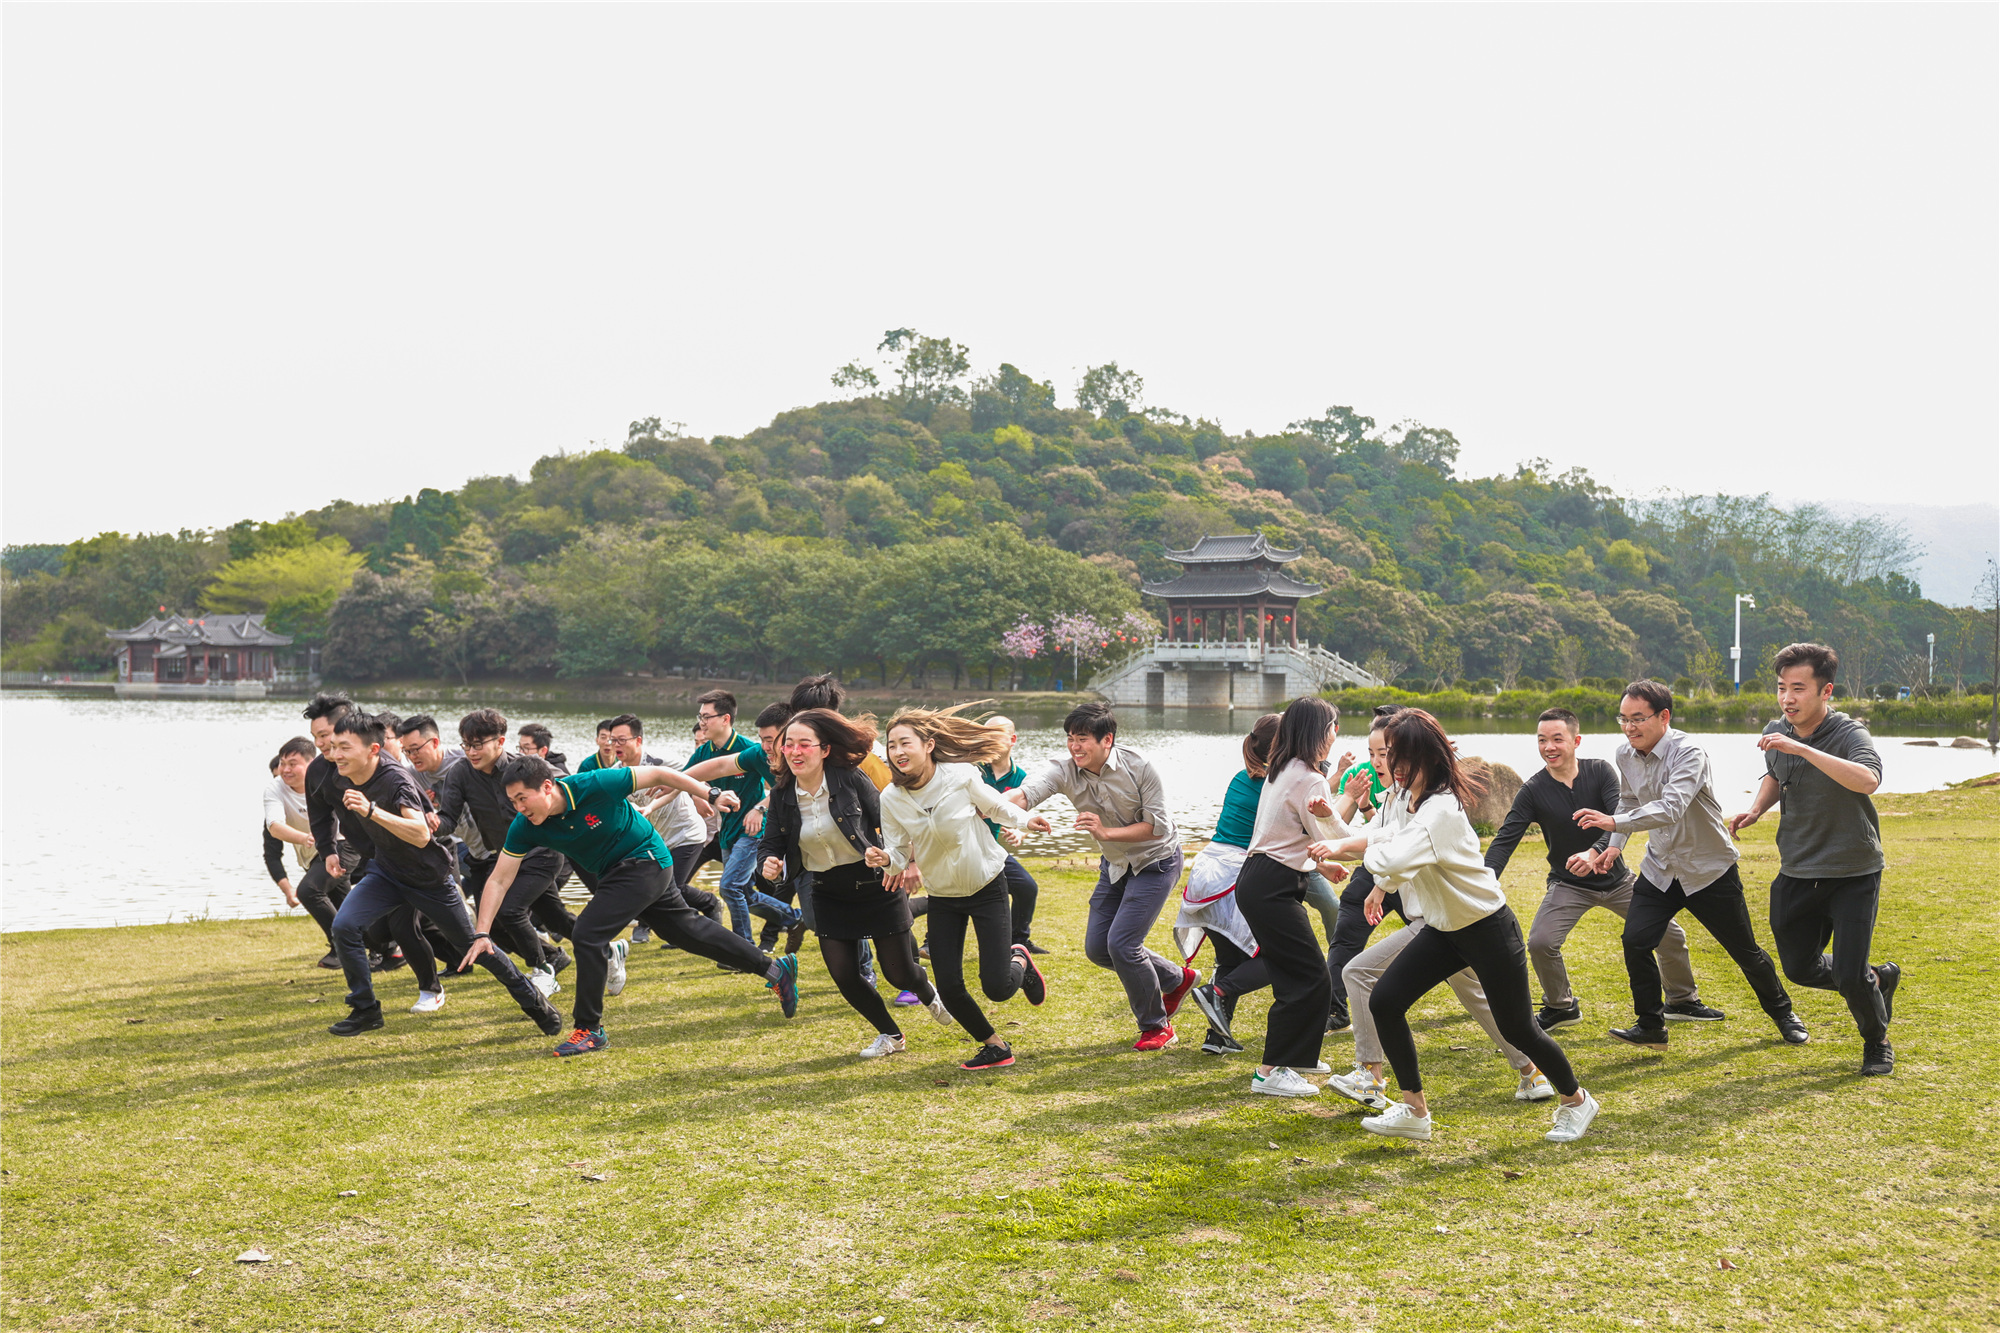 Shengbang Machinery held a tug-of-war competition